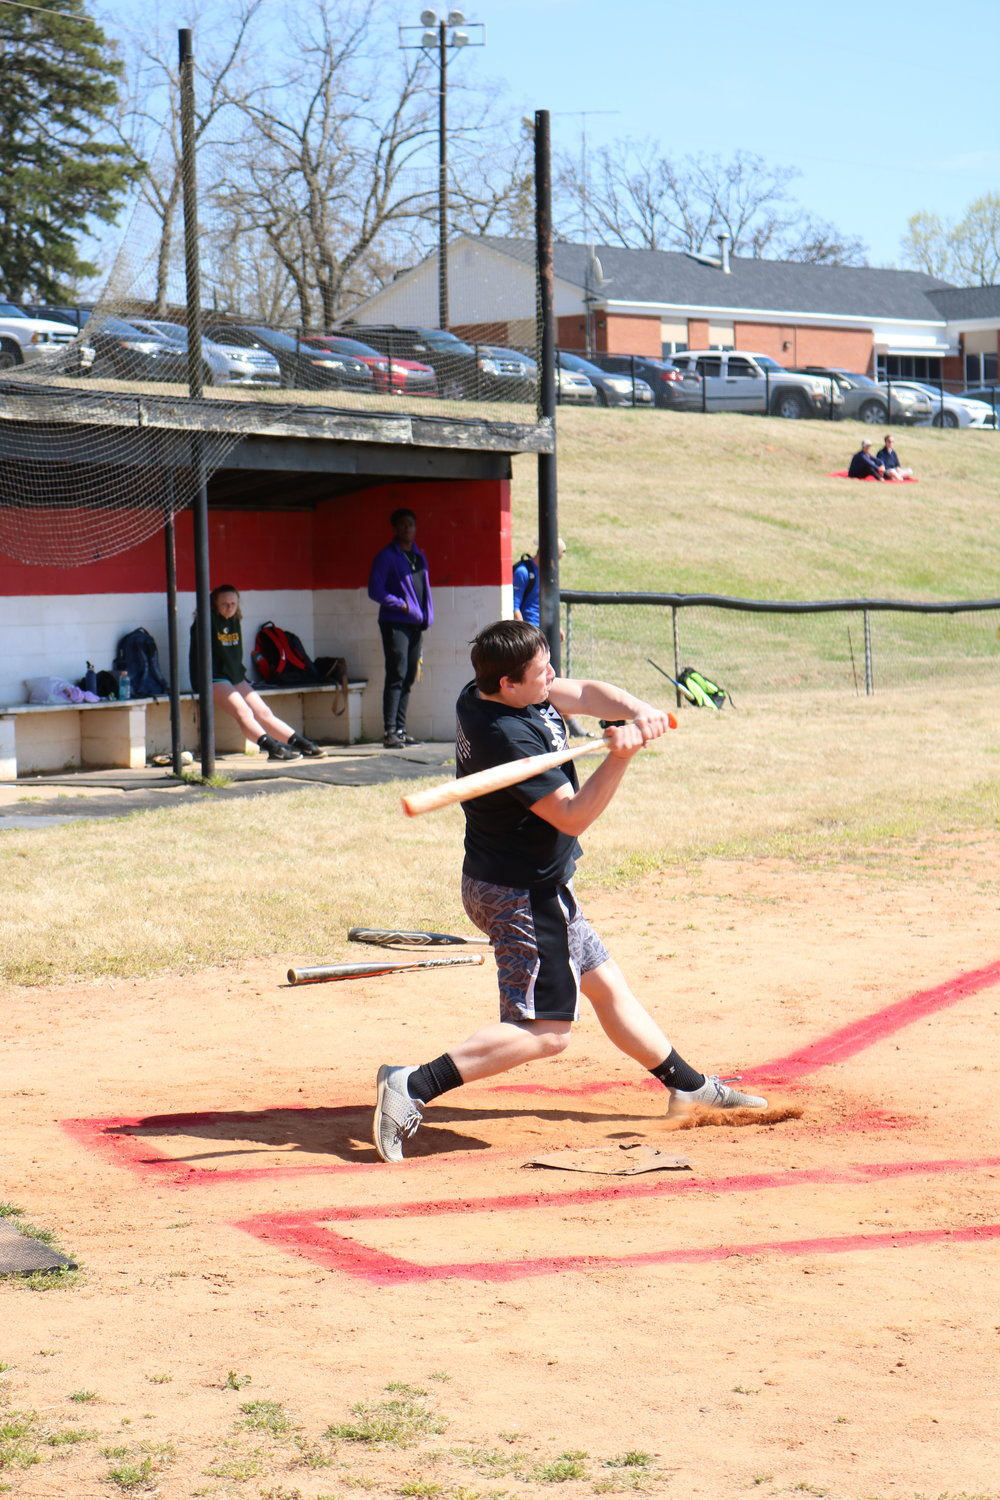 Freshman Jesse Haack takes a swing and ends up hitting a home run for their team BATsheba during the bottom of the 2nd inning.